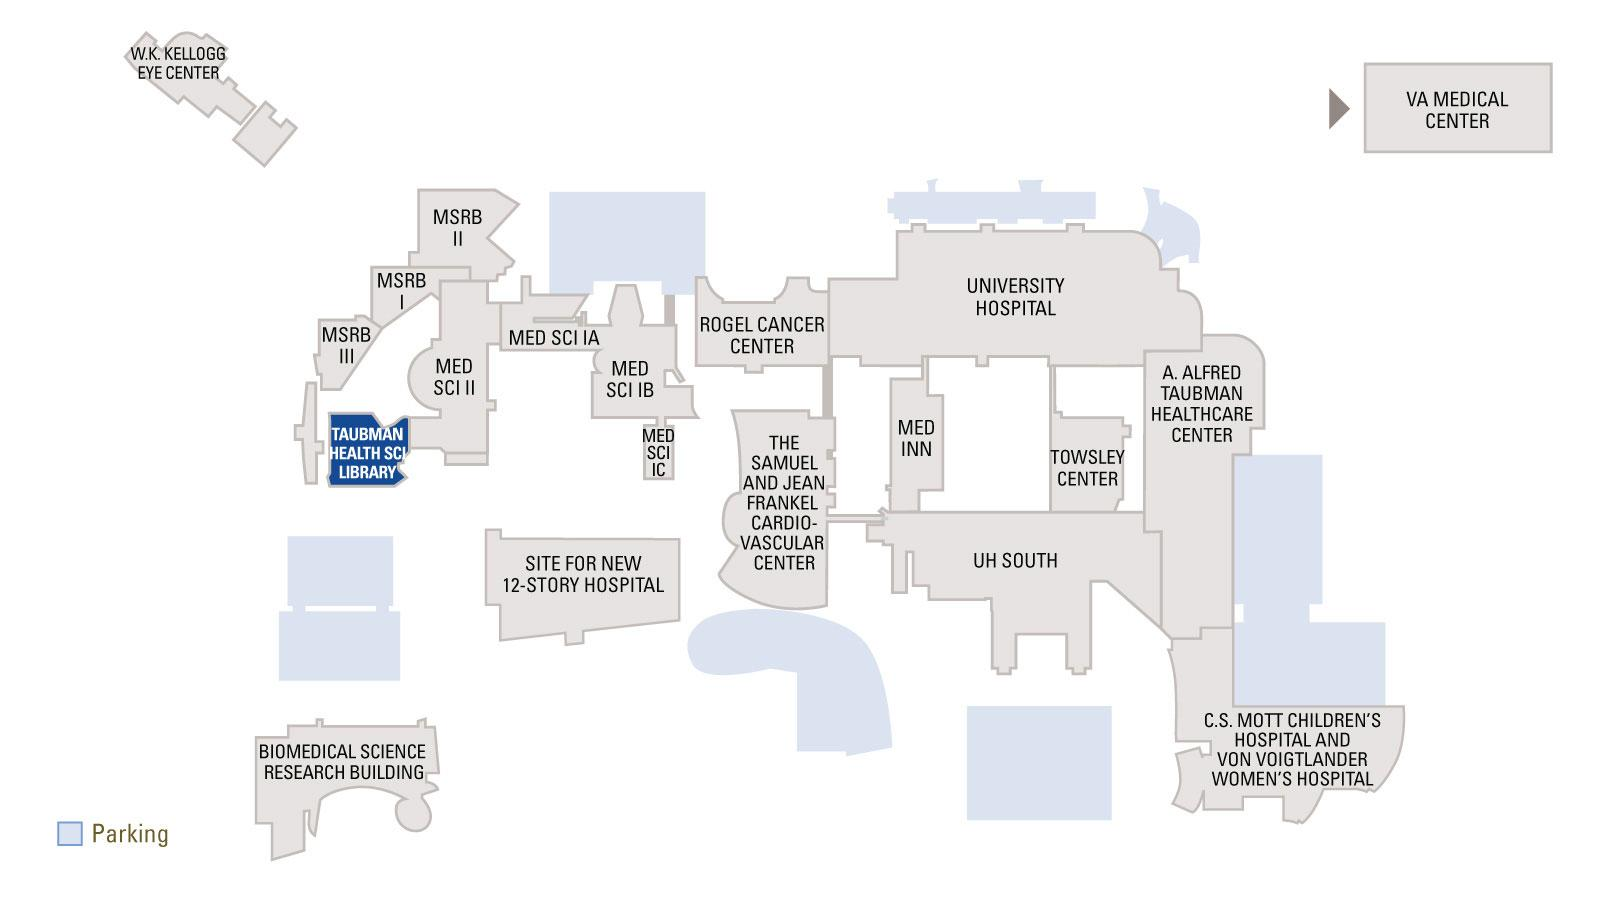 Overview map of medical campus with Taubman Health Sciences Library highlighted in blue